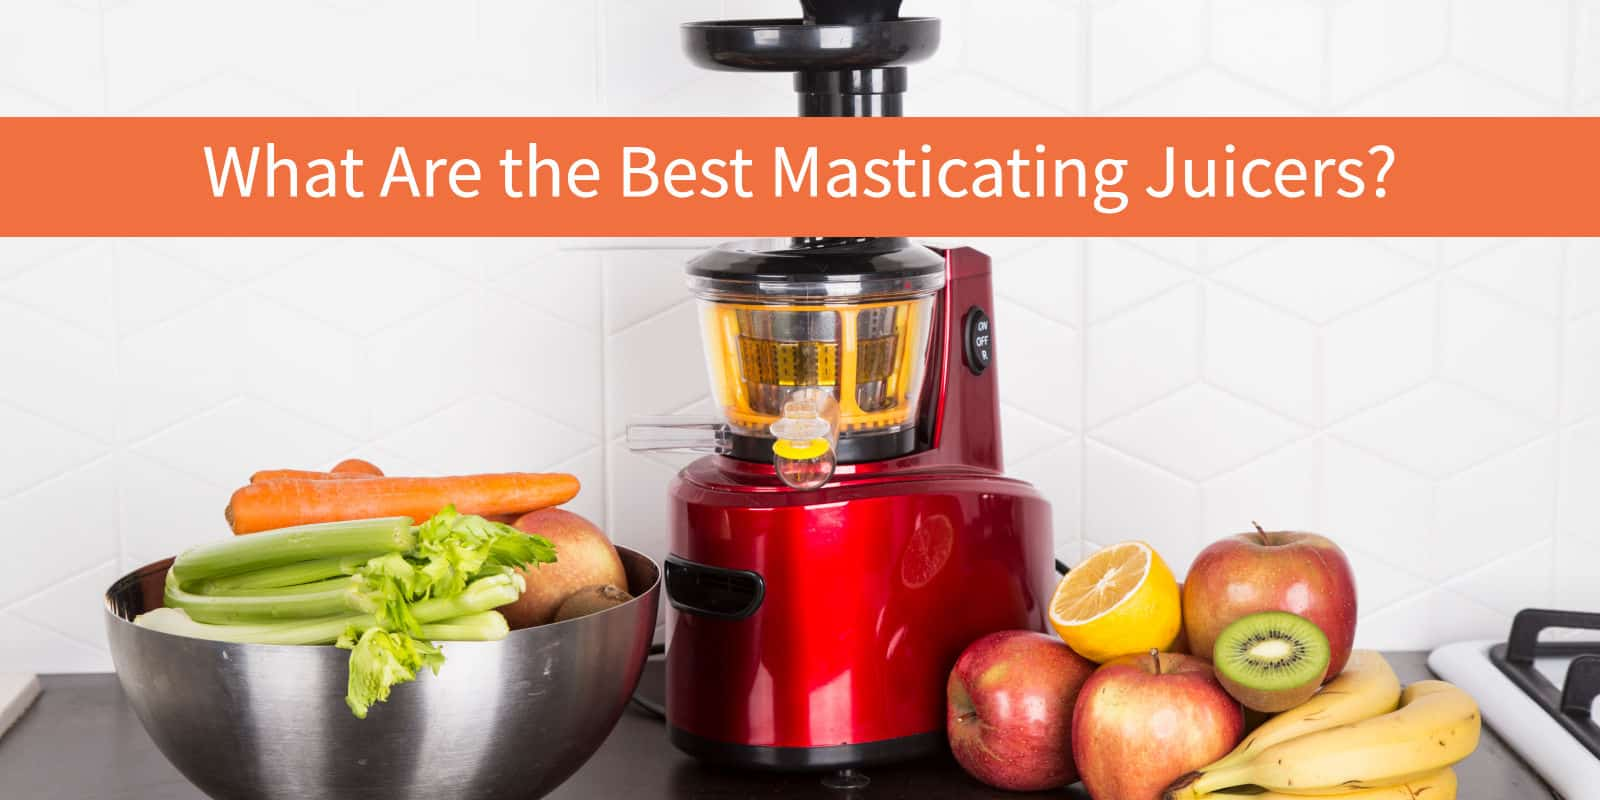 Best Masticating Juicer Deals : Best Masticating Juicer Reviews.Best Juicer. Juicer Masticating Best. Juicer Reviews Masticating ...